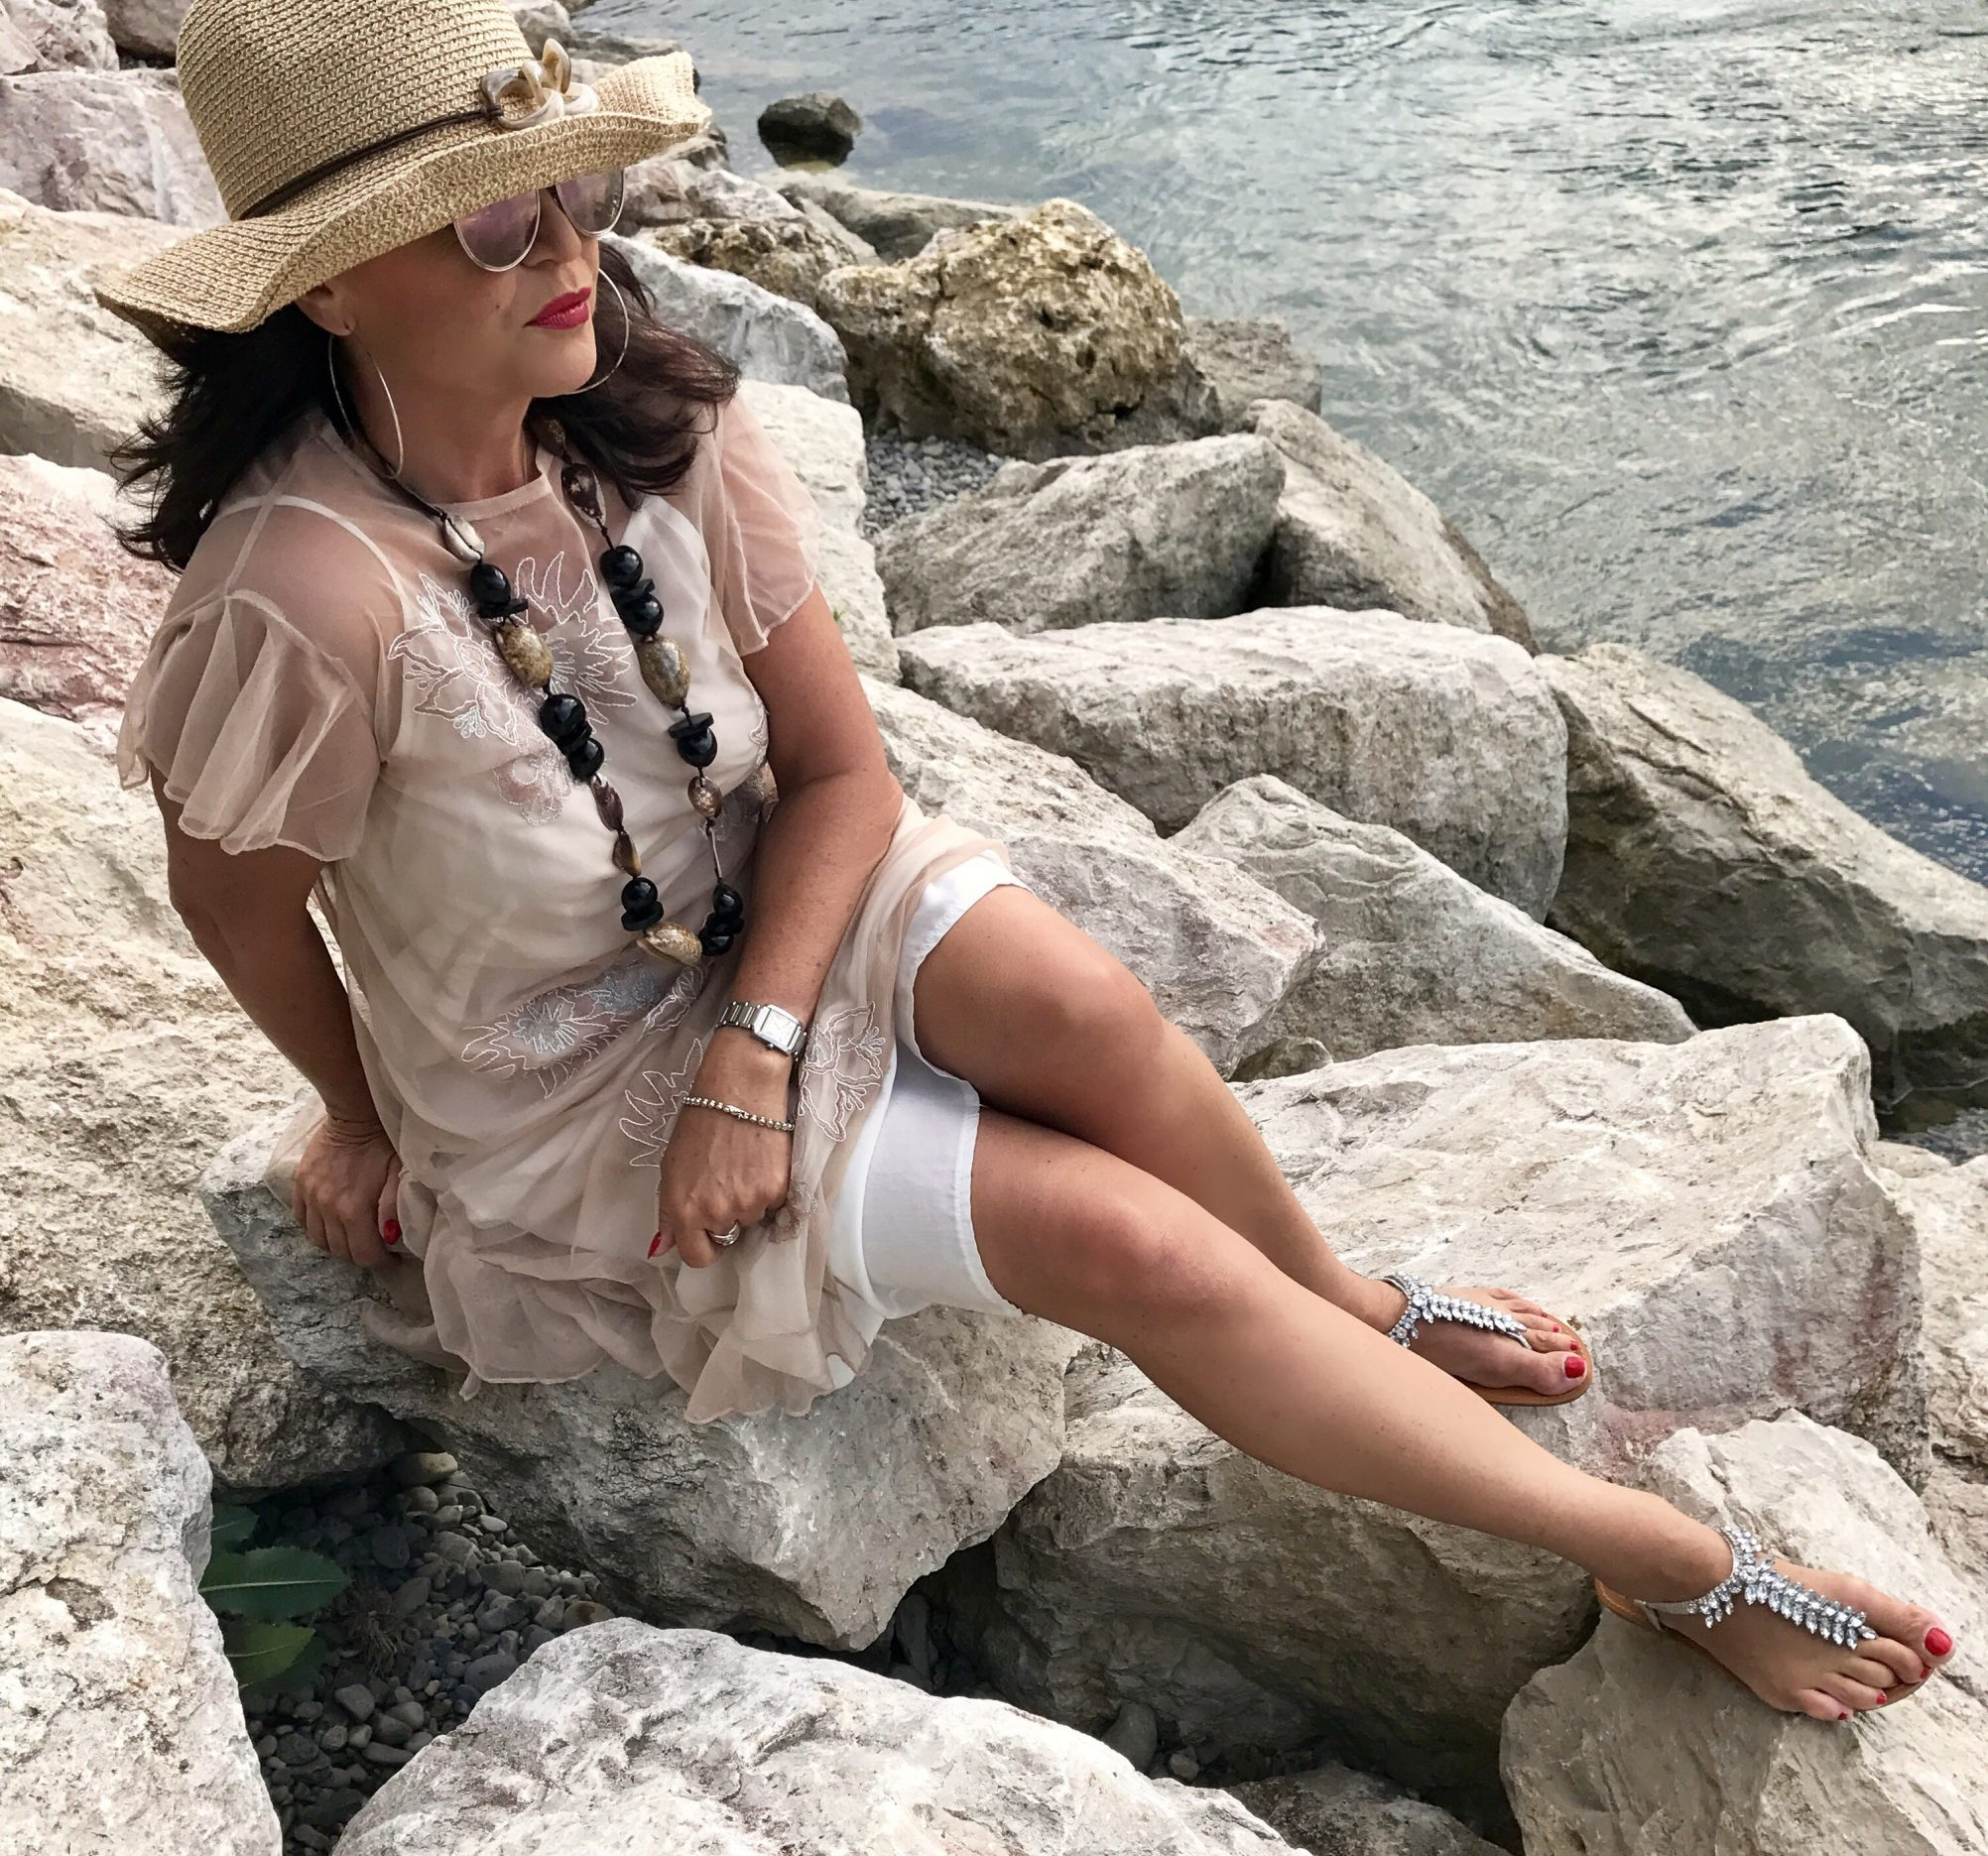 Summerlook, summer outfit, summer style, beach wear, sunhat, hat, zara, cotton candy, dior, DIOR shades, DIOR eyewear, eyewearblogger, eyewearfashion, eyeweartrends, Modeblogger, fashionblogger, Bekleidung, Damenmode, fashion for ladies